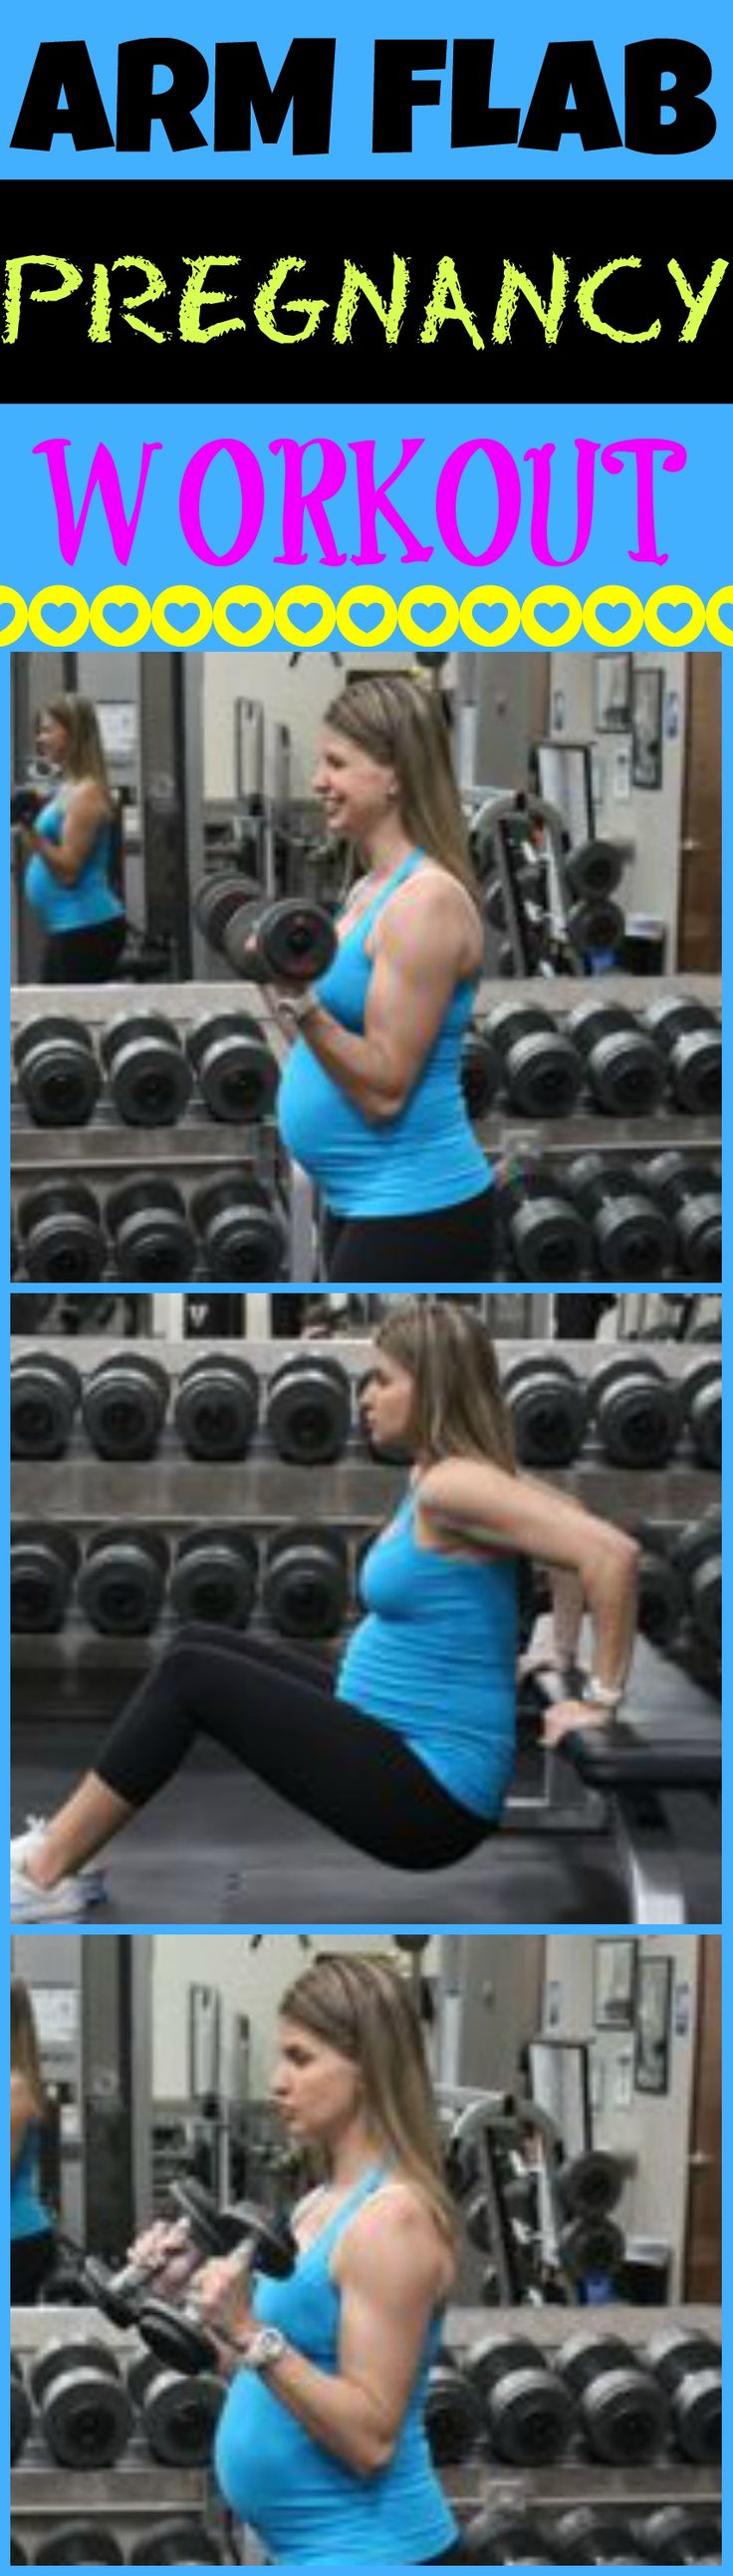 pregnant voyeur -porn 188 best images about Pregnant : Fitness on Pinterest | Muscle, Prenatal  workout and Fascia lata